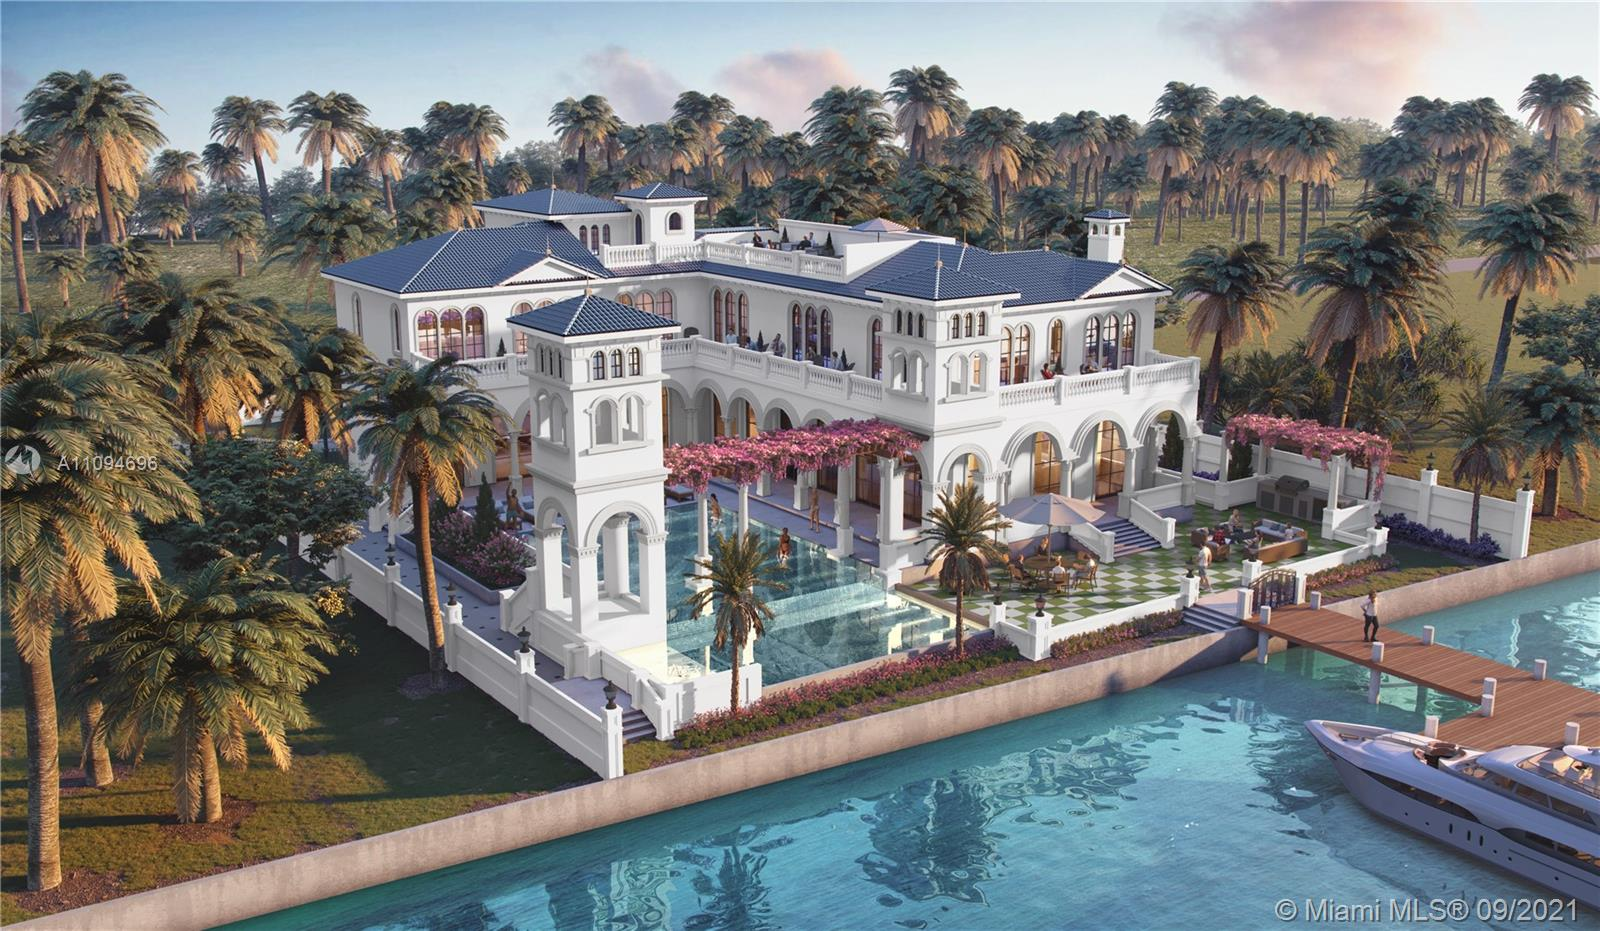 Designed by award-winning designer and builder Andrea D'Alessio. This 11,000± sq. ft. mansion with 10 beds/14 baths, is situated on an oversized 22,000± square foot lot. 125± linear feet of water frontage with new seawall and yacht-accommodating dock. 12-foot ceilings throughout with elevator access to a roof top deck and portico. Custom interior finishes include (1) imported Italian marble floors; (2) hand-crafted solid wood cabinets imported from Milan, Italy; (3) a spacious home gym; (4) a state-of-the-art media room; and (5) a Crestron home automation system (6) 3-car garage (7) 2 bed/2 bath guesthouse. Completion Date: 11/23/2021